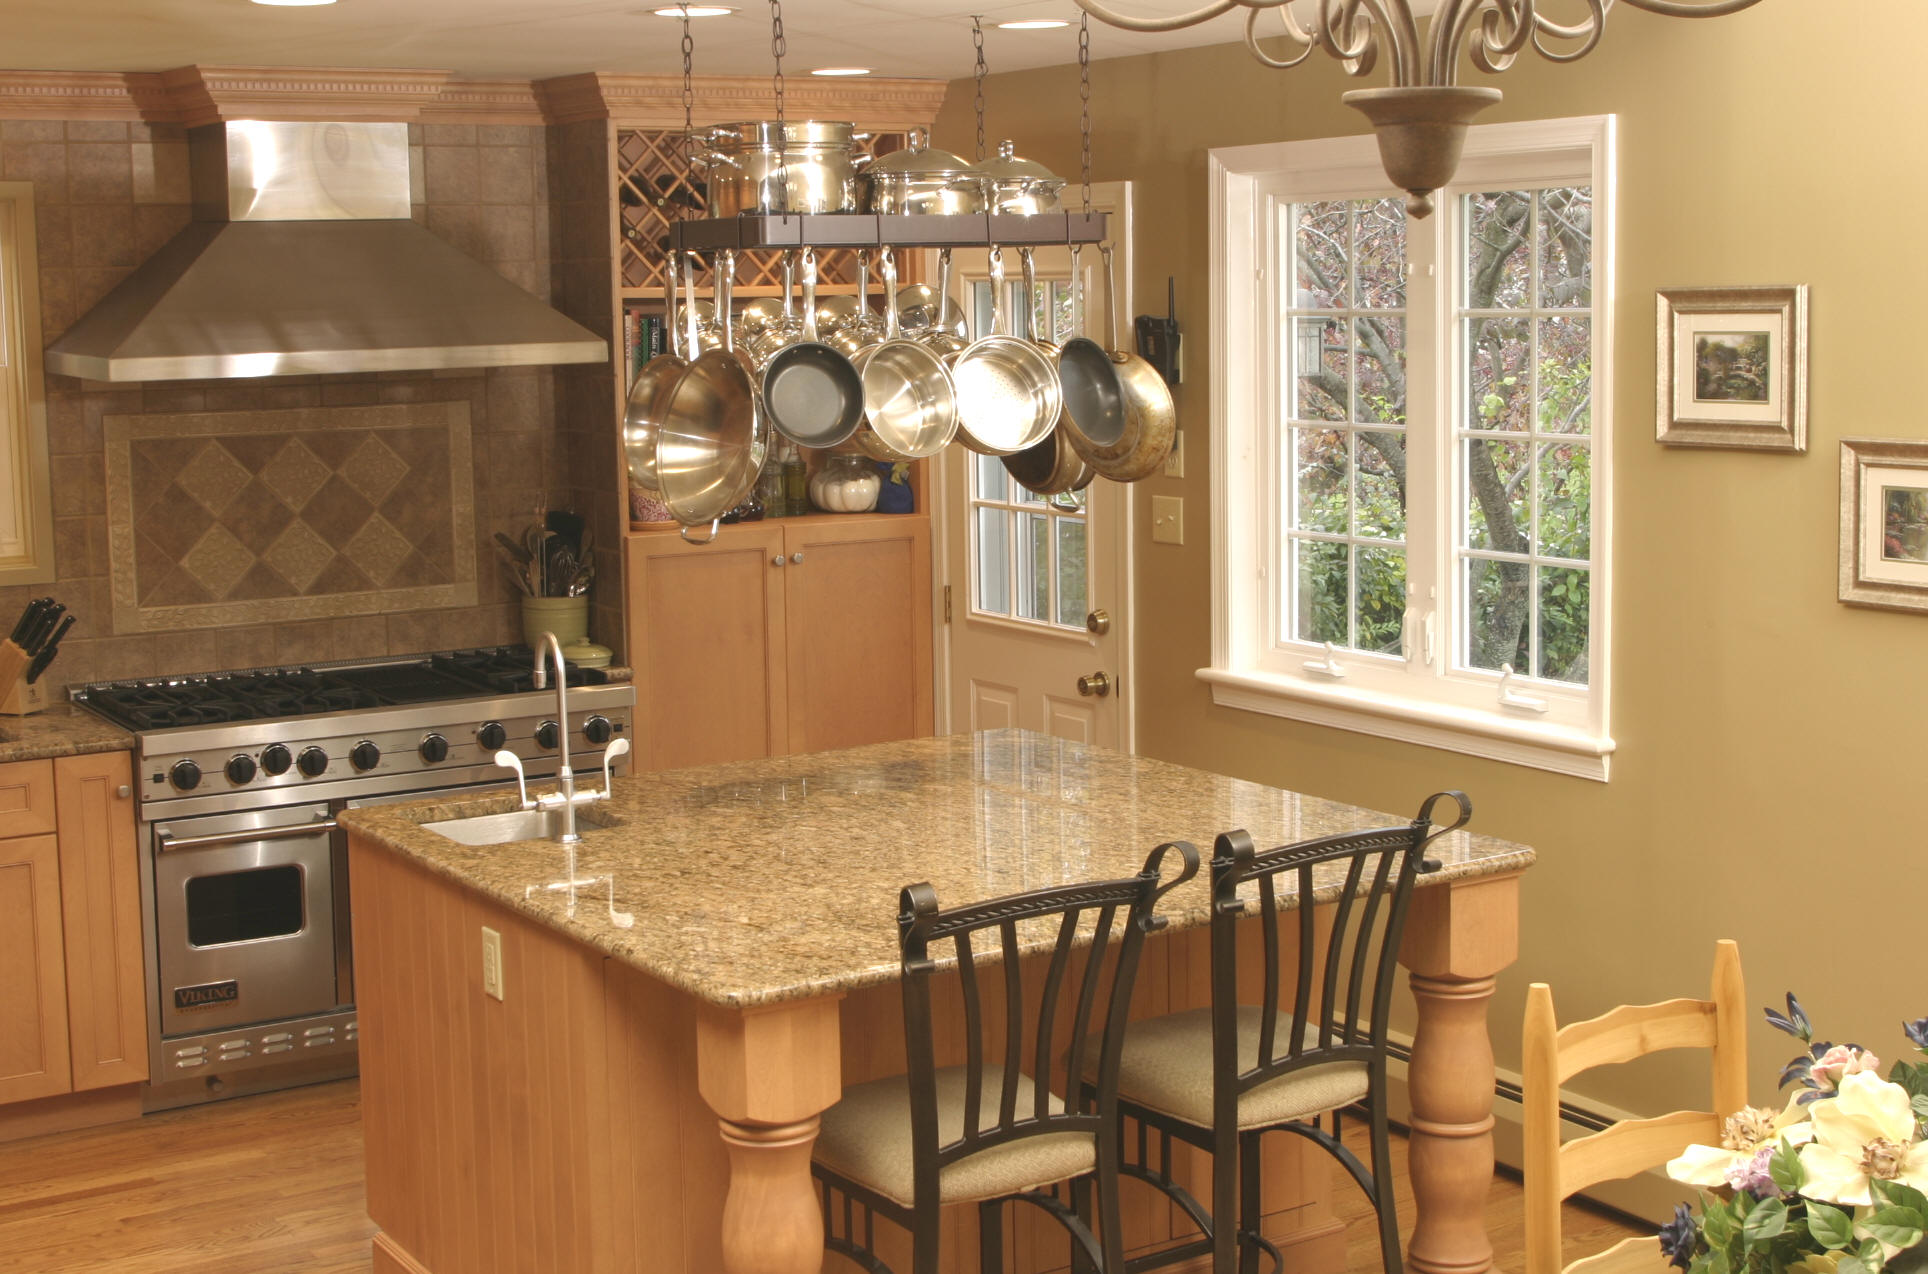 Kitchen Cabinets South Jersey Rich Maid Kabinetry | Usa | Kitchens And Baths Manufacturer